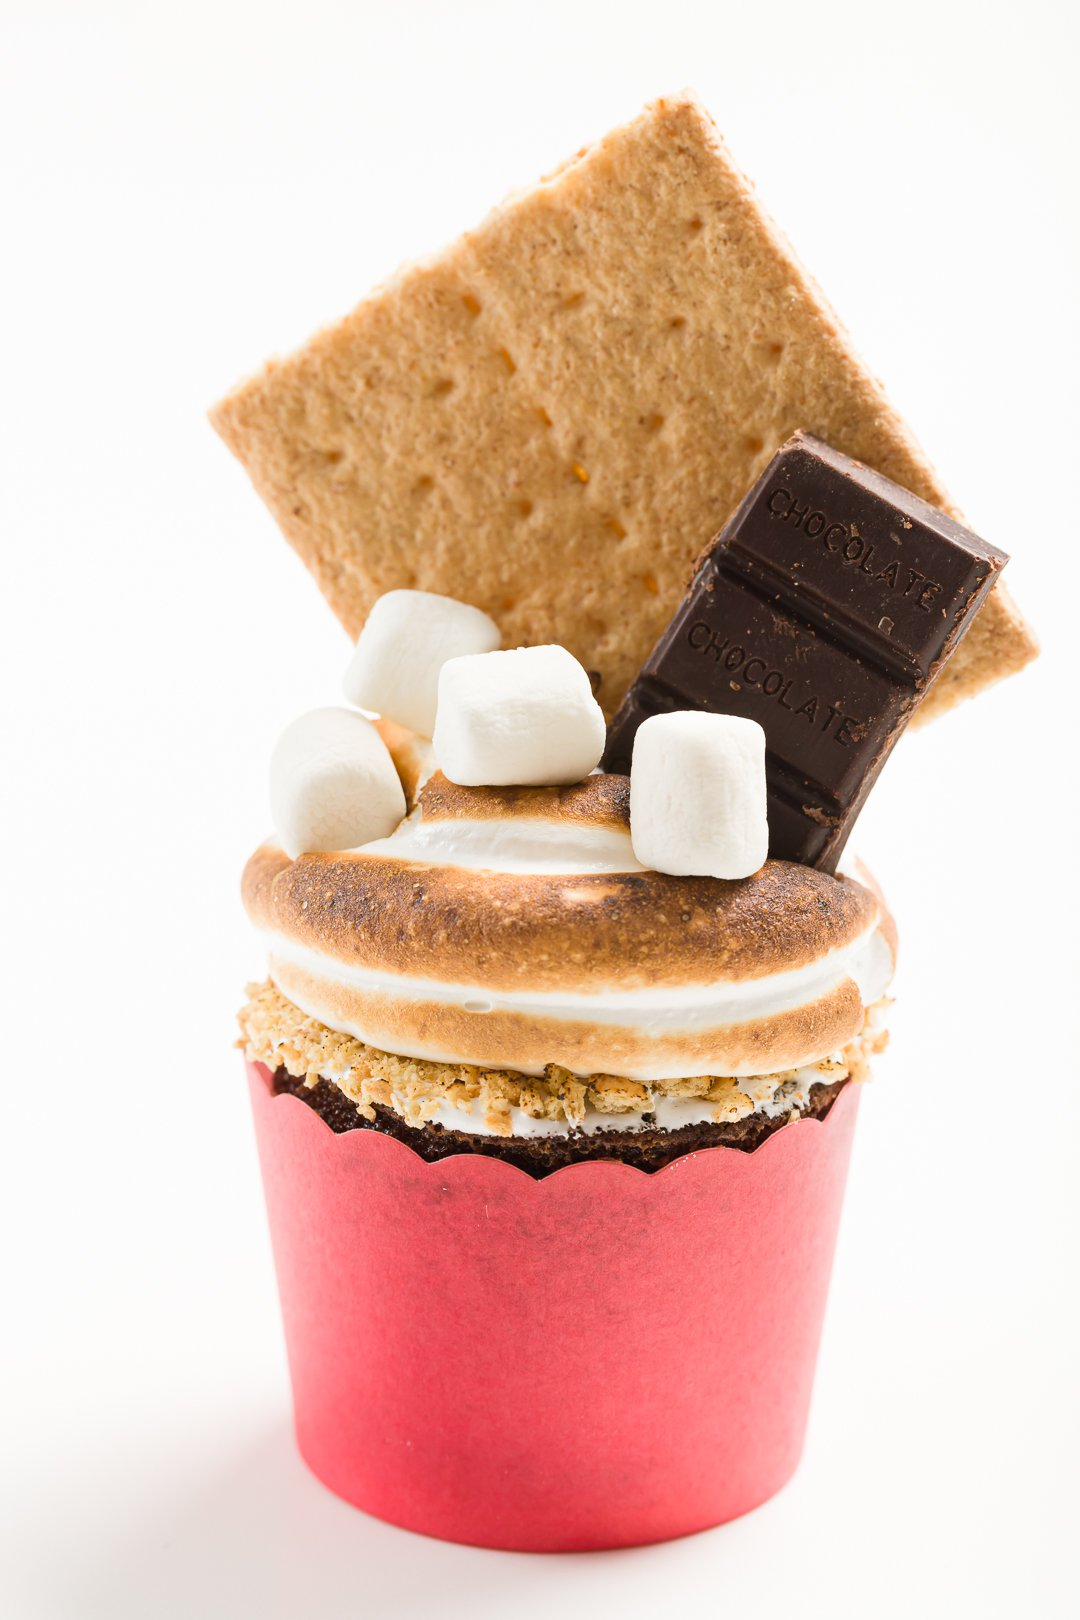 Decorated S'mores Cupcakes on a white background